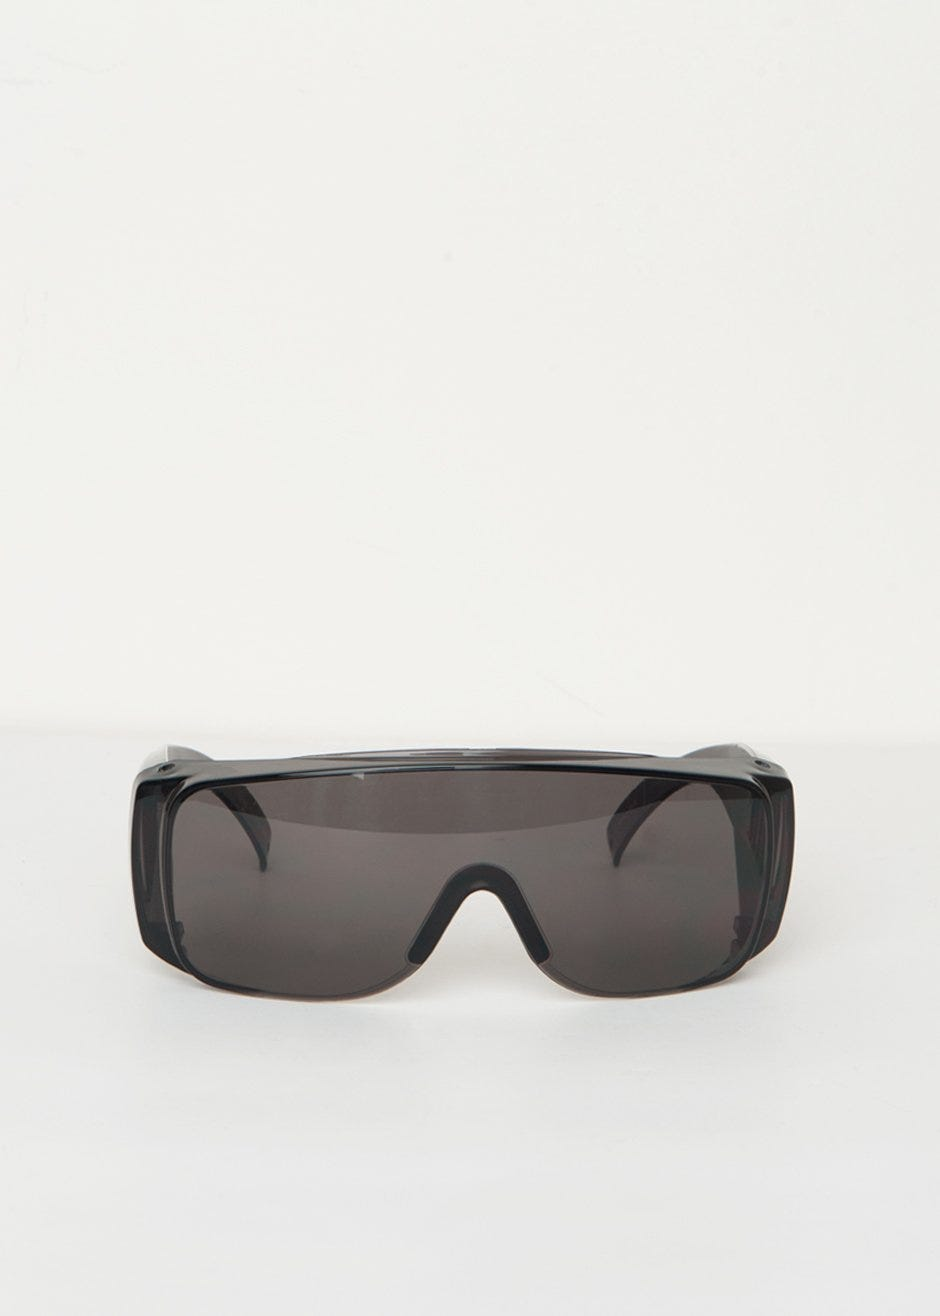 4f6ed17929ea2 Futuristic Sunglasses To Embrace The Sci Fi Style Trend